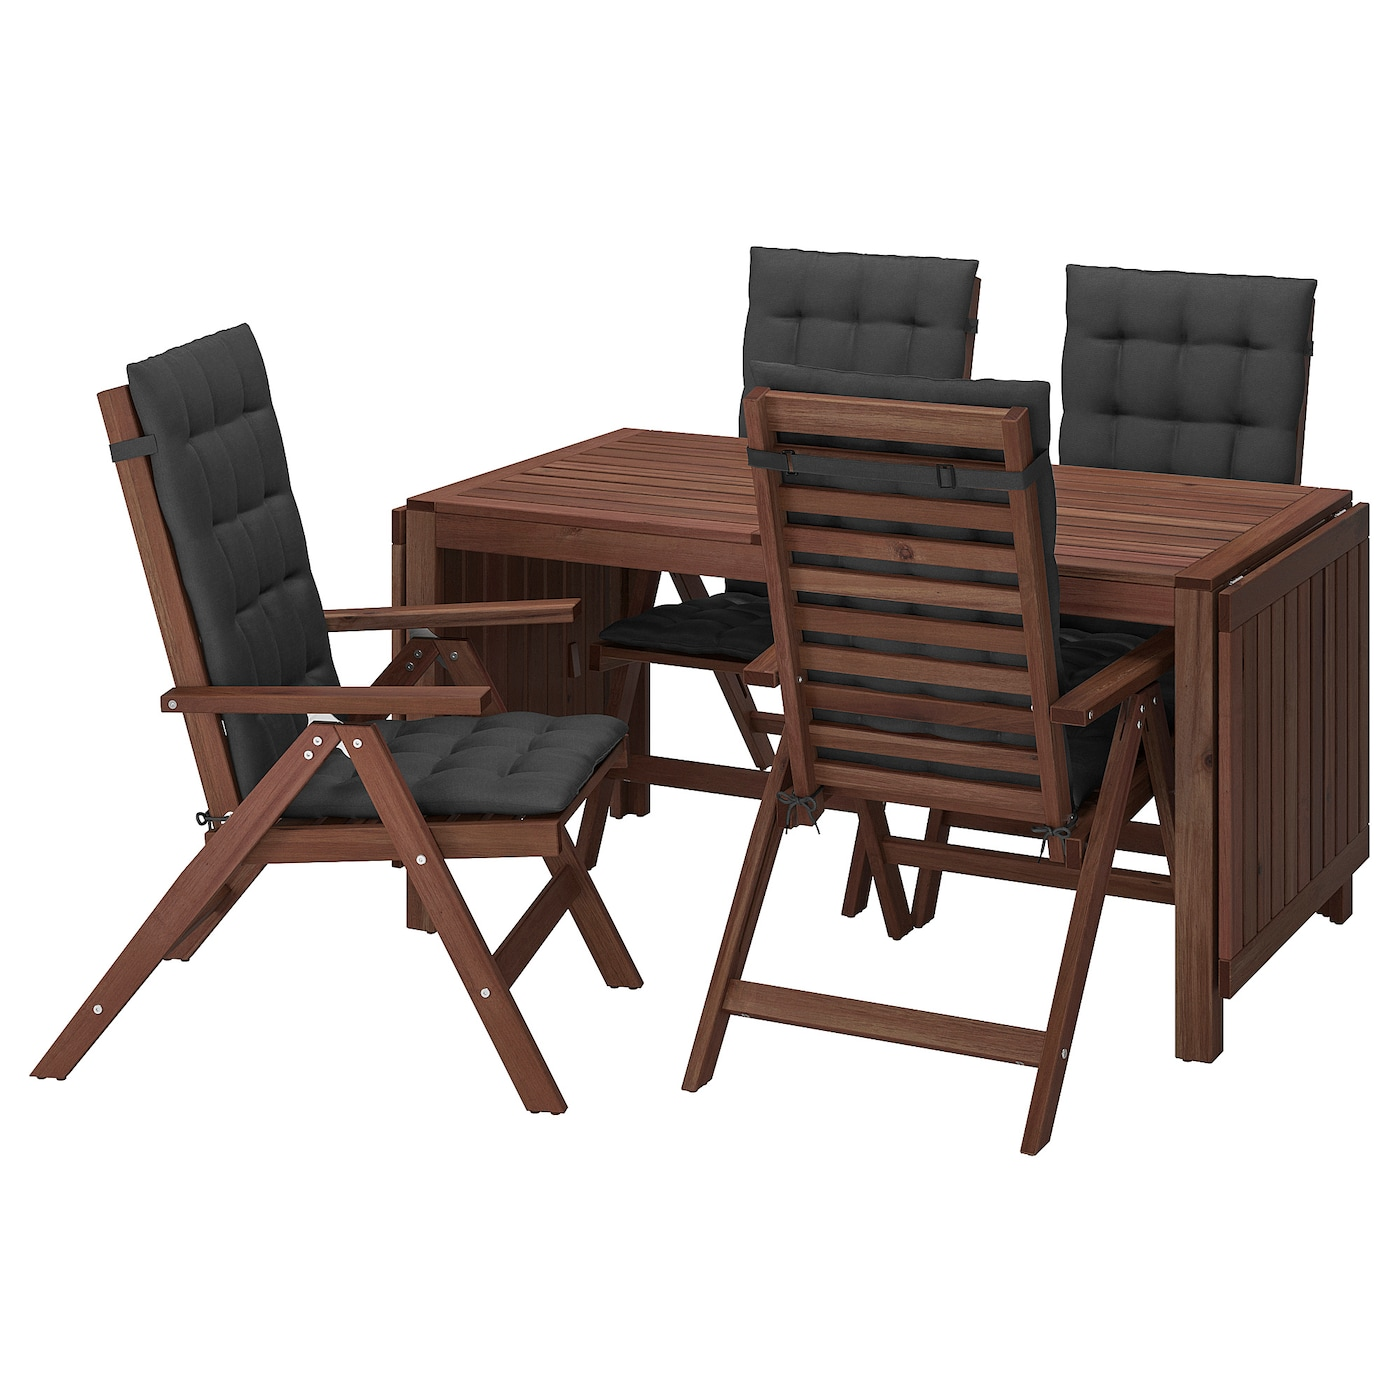 Applaro Table 4 Reclining Chairs Outdoor Brown Stained Hallo Black Ikea